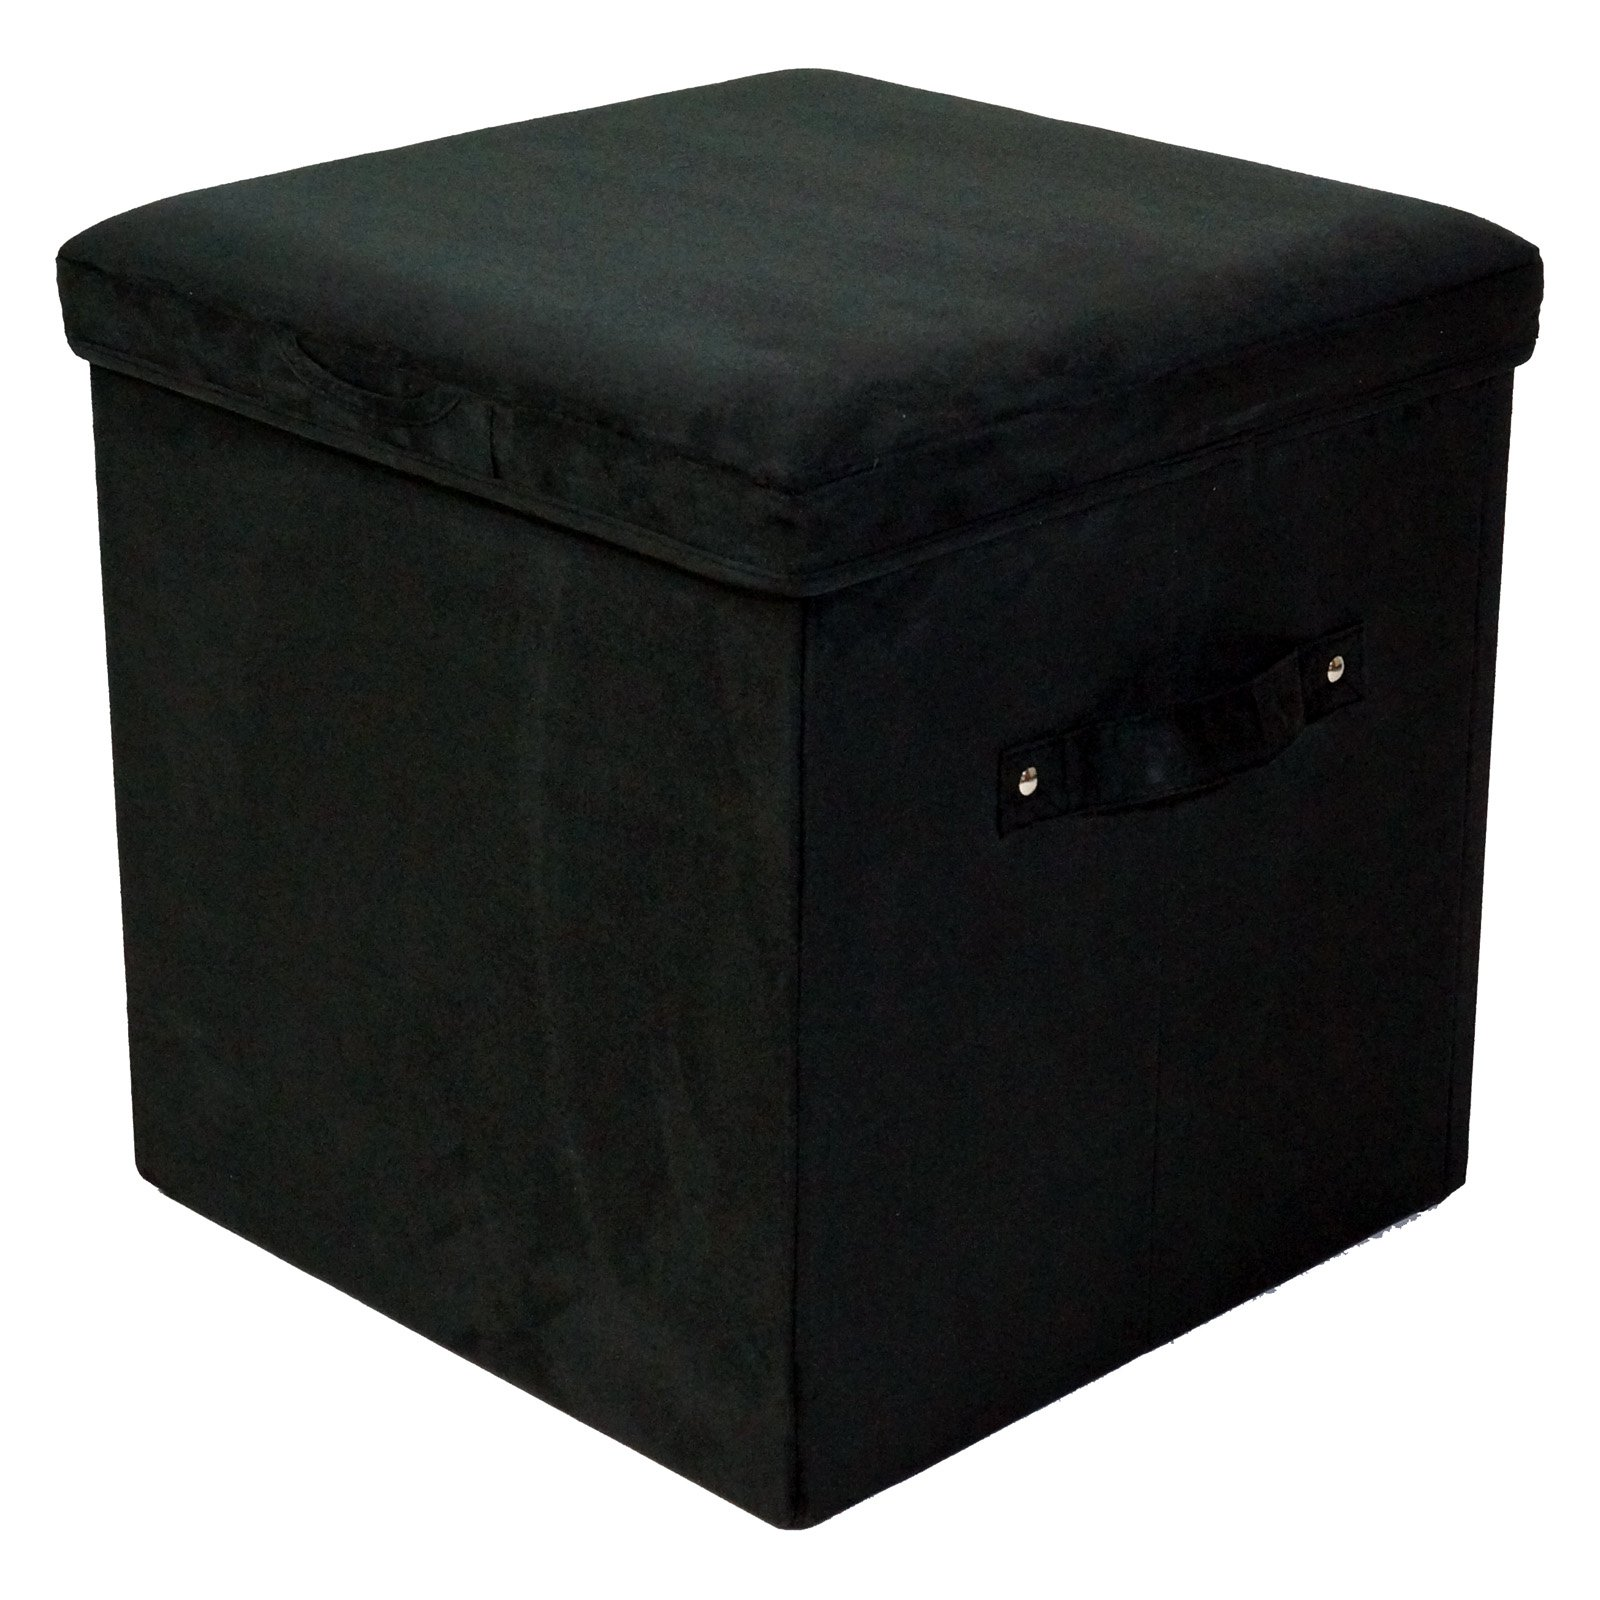 Seat Pad Folding Storage Ottoman. Micro Suede Cover-Black